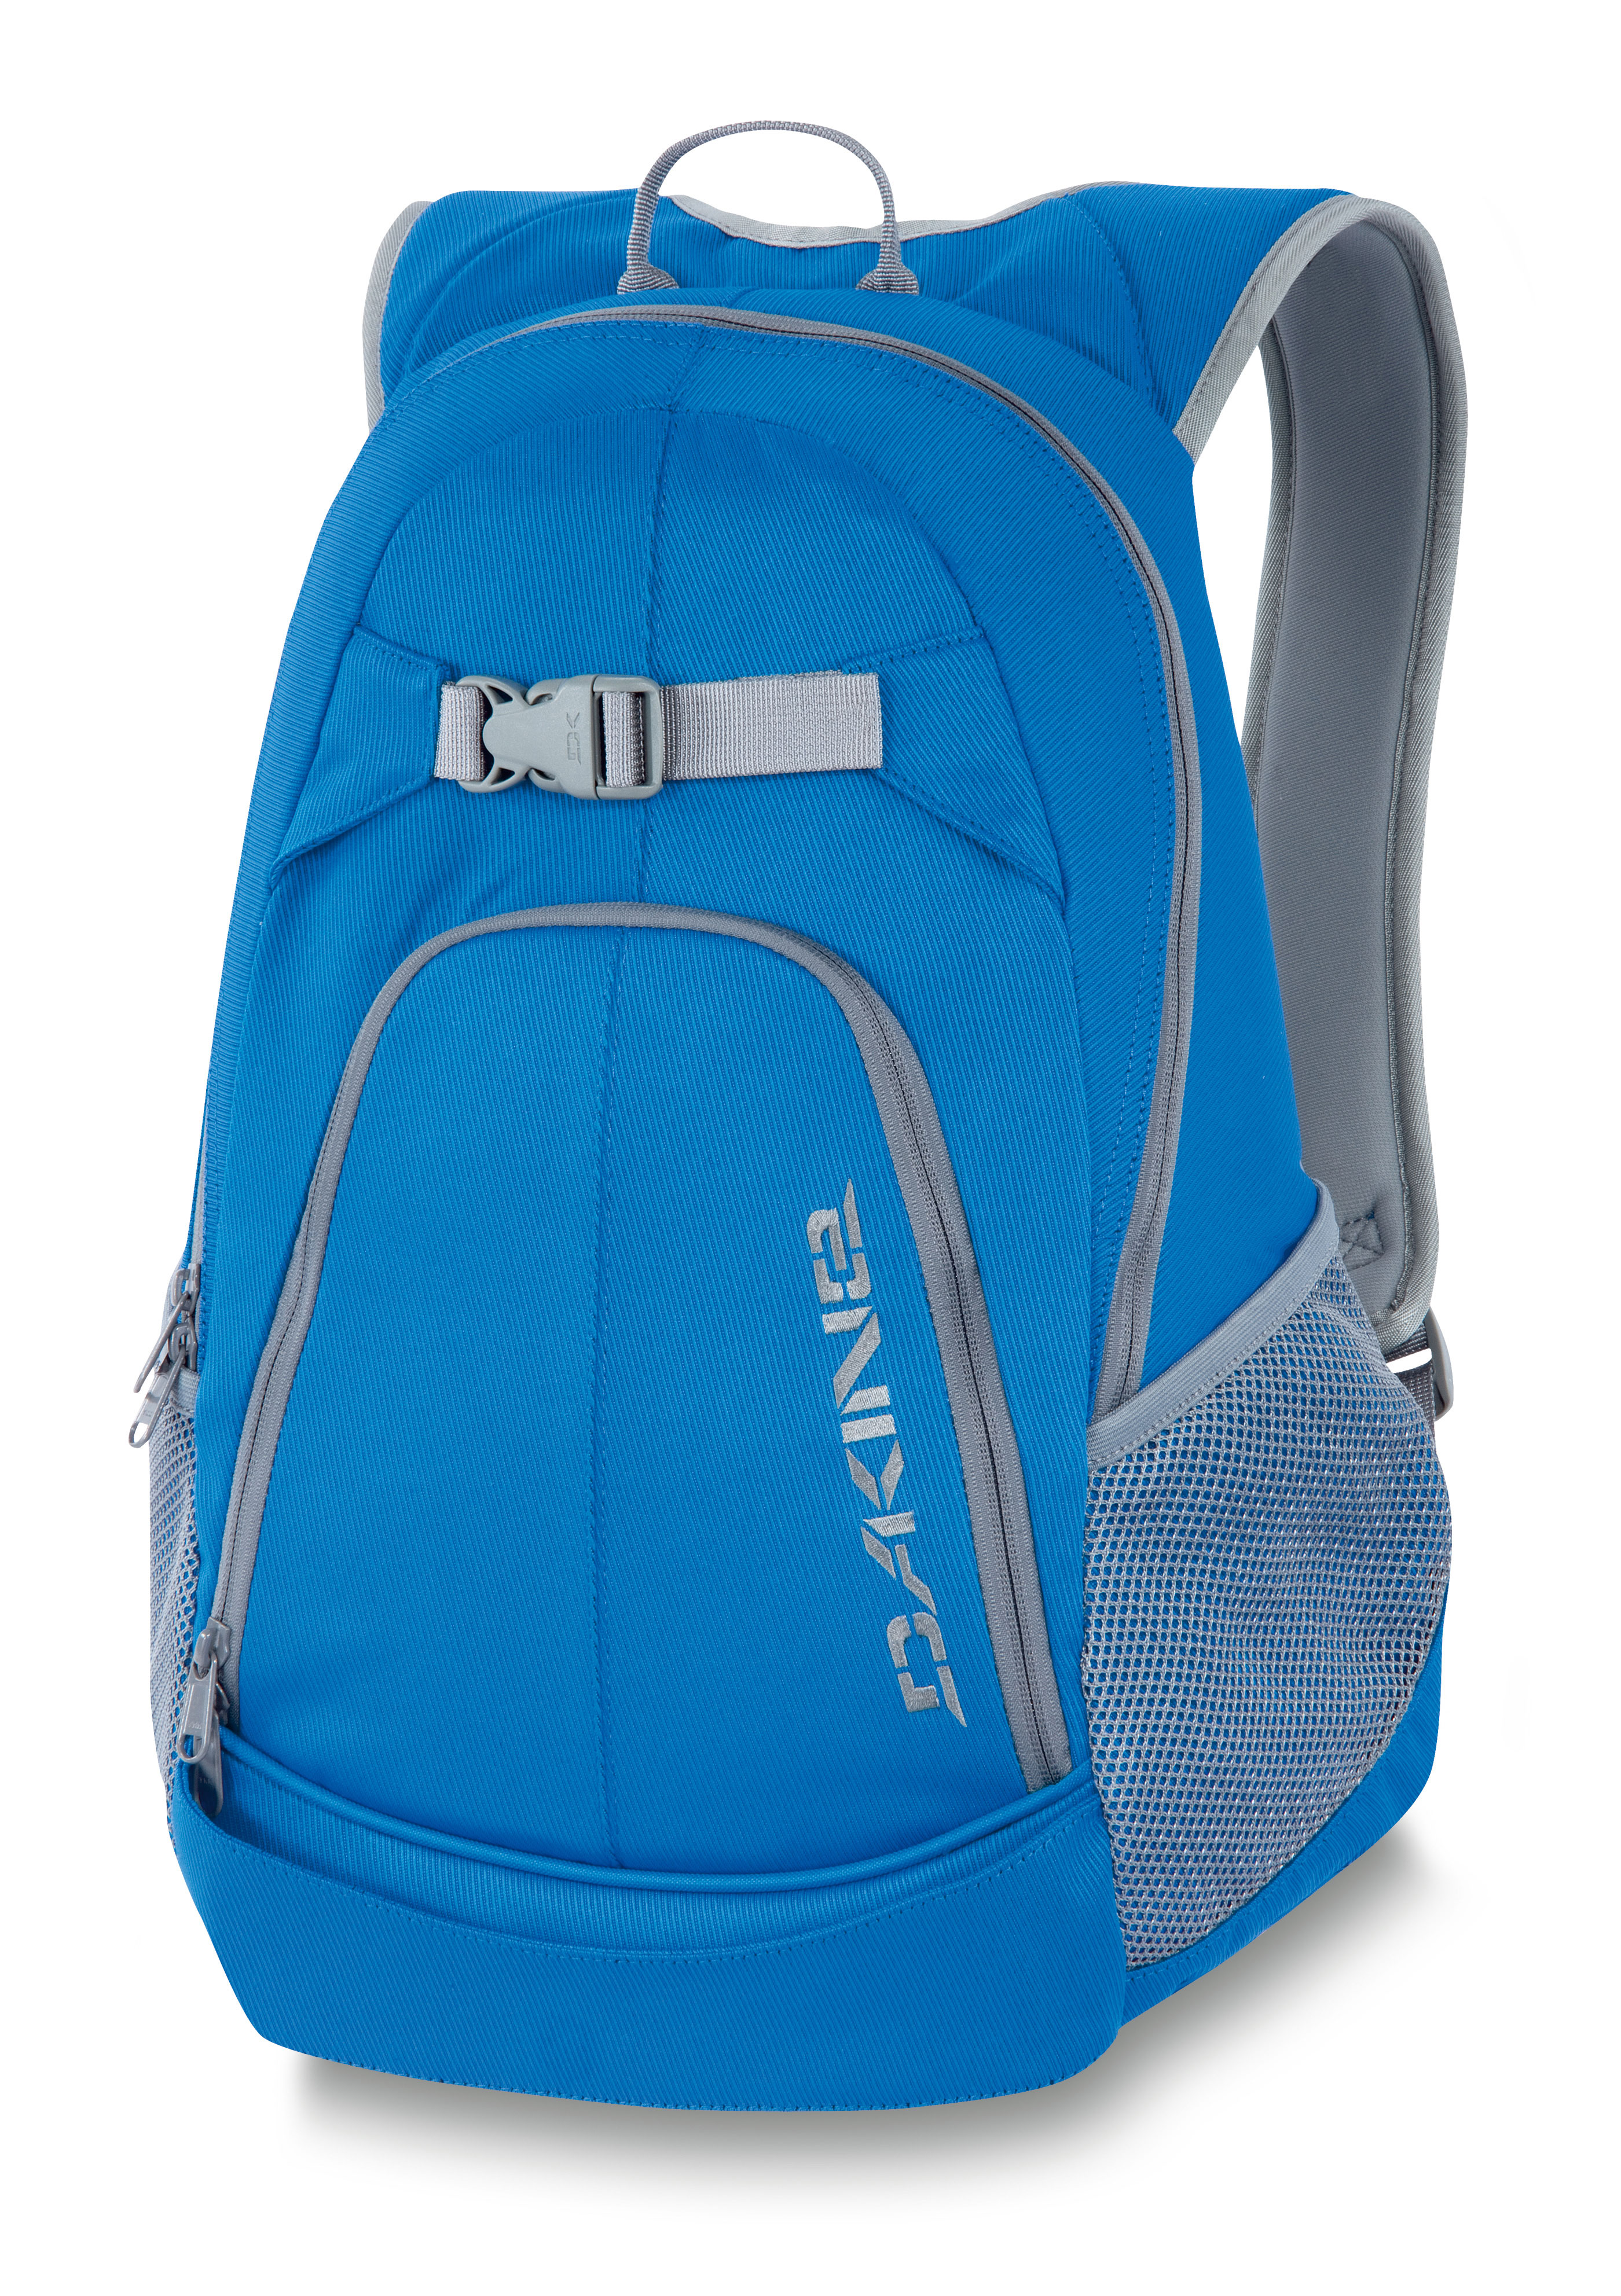 "Surf Key Features of the Dakine Pivot Backpack: Quick load skate carry Organizer pocket Mesh side pockets Volume: 1300 cu.in. [ 21L ] Size: 18 x 12 x 6"" [ 46 x 30 x 15cm ] 600D Polyester - $27.95"